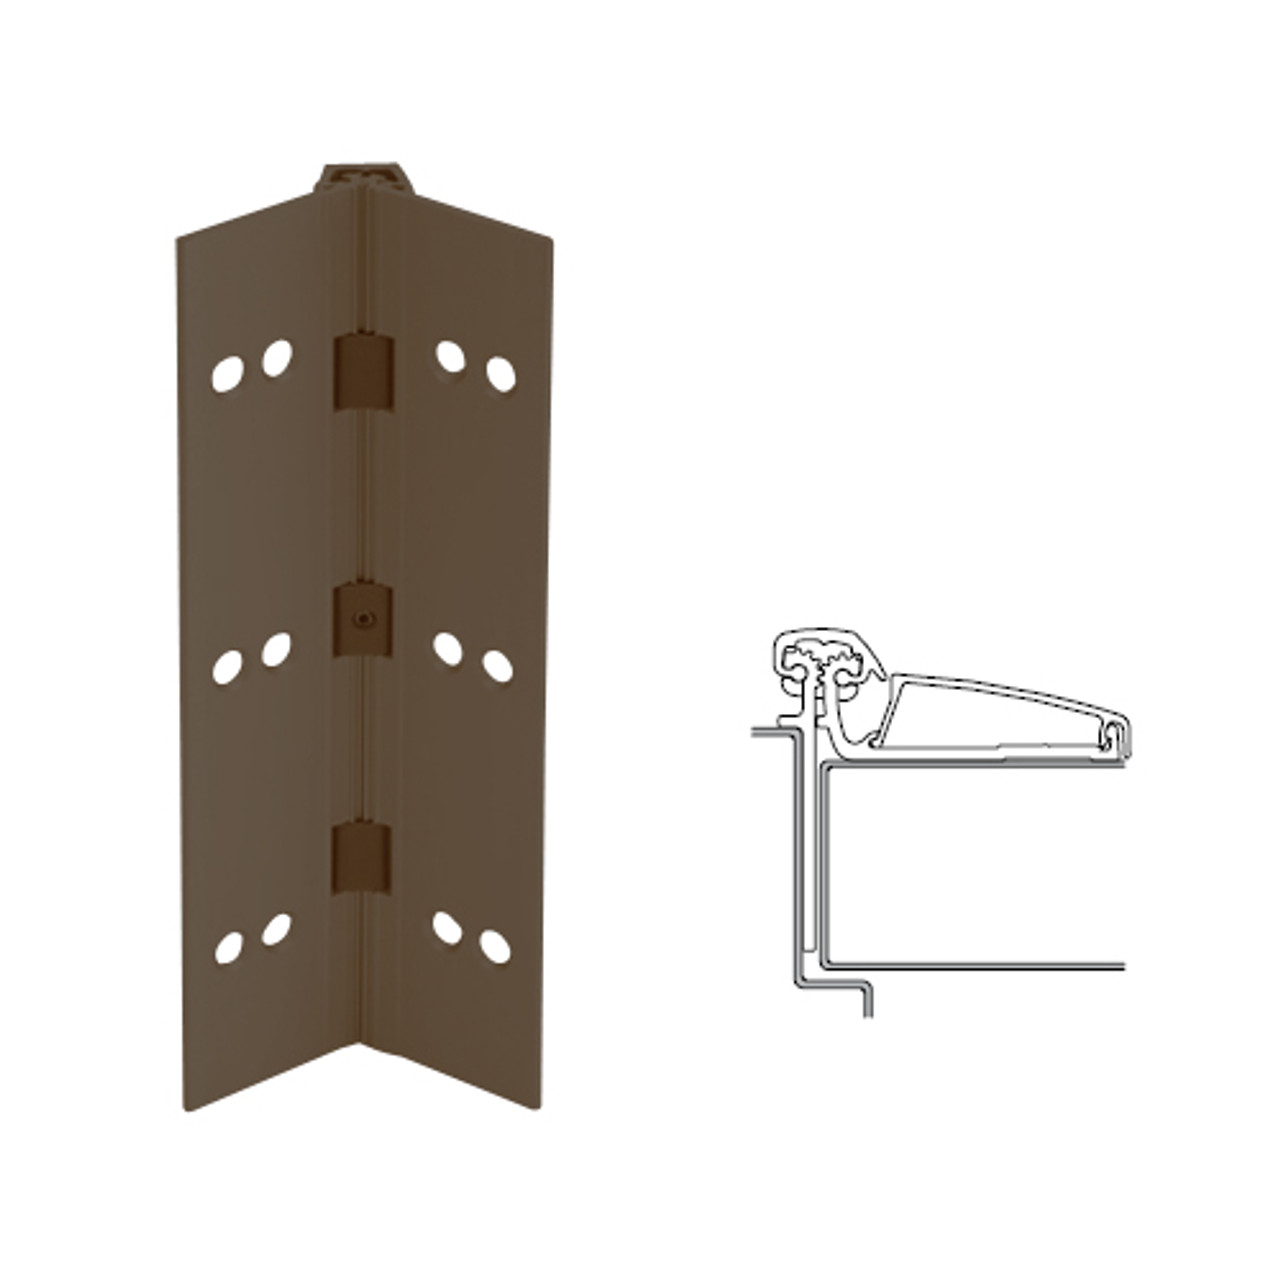 046XY-313AN-85 IVES Adjustable Half Surface Continuous Geared Hinges in Dark Bronze Anodized